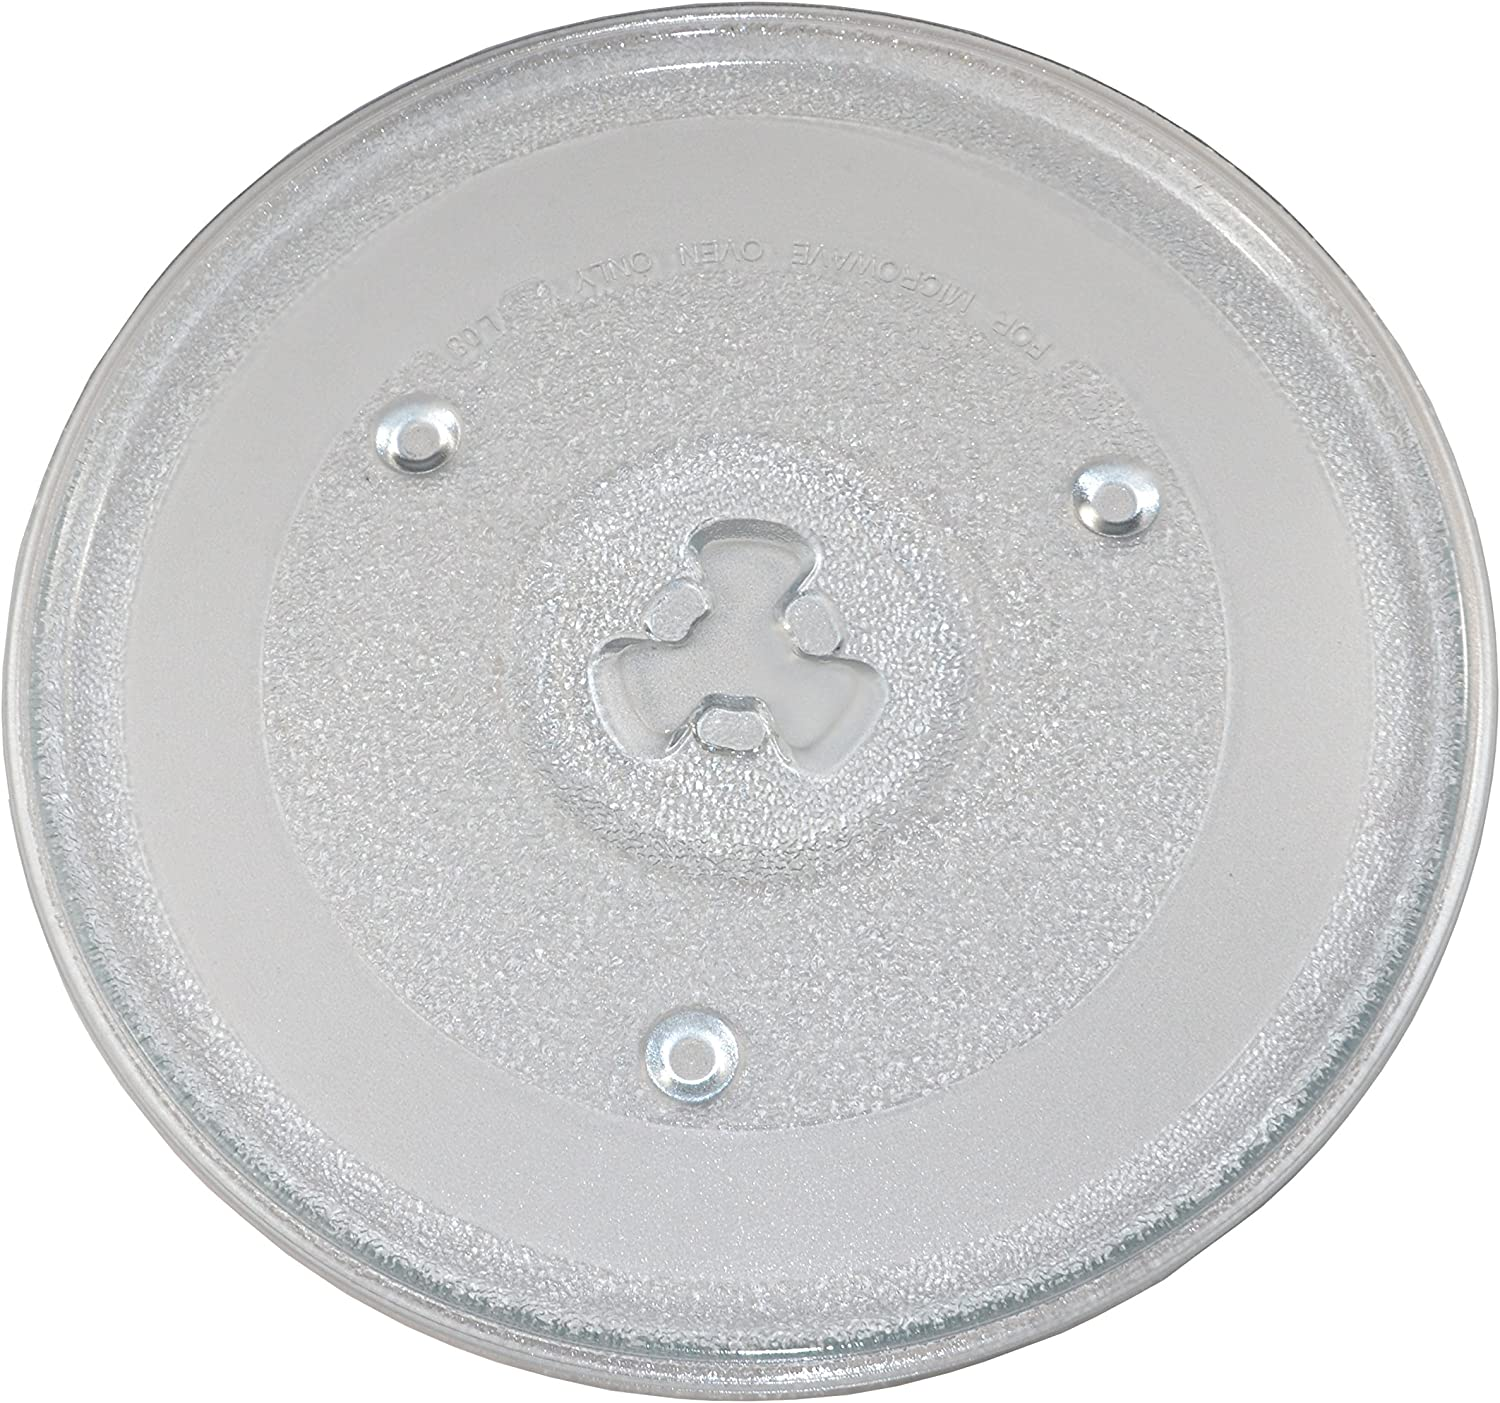 "HQRP 10.5"" / 27cm Glass Turntable Tray fits GE General Electric, Hamilton Beach, Panasonic, Emerson, Haier, Chefmate, Avanti, Sunbeam, Oster, Rival Microwave Oven Cooking Plate 10-1/2-inch 270mm"